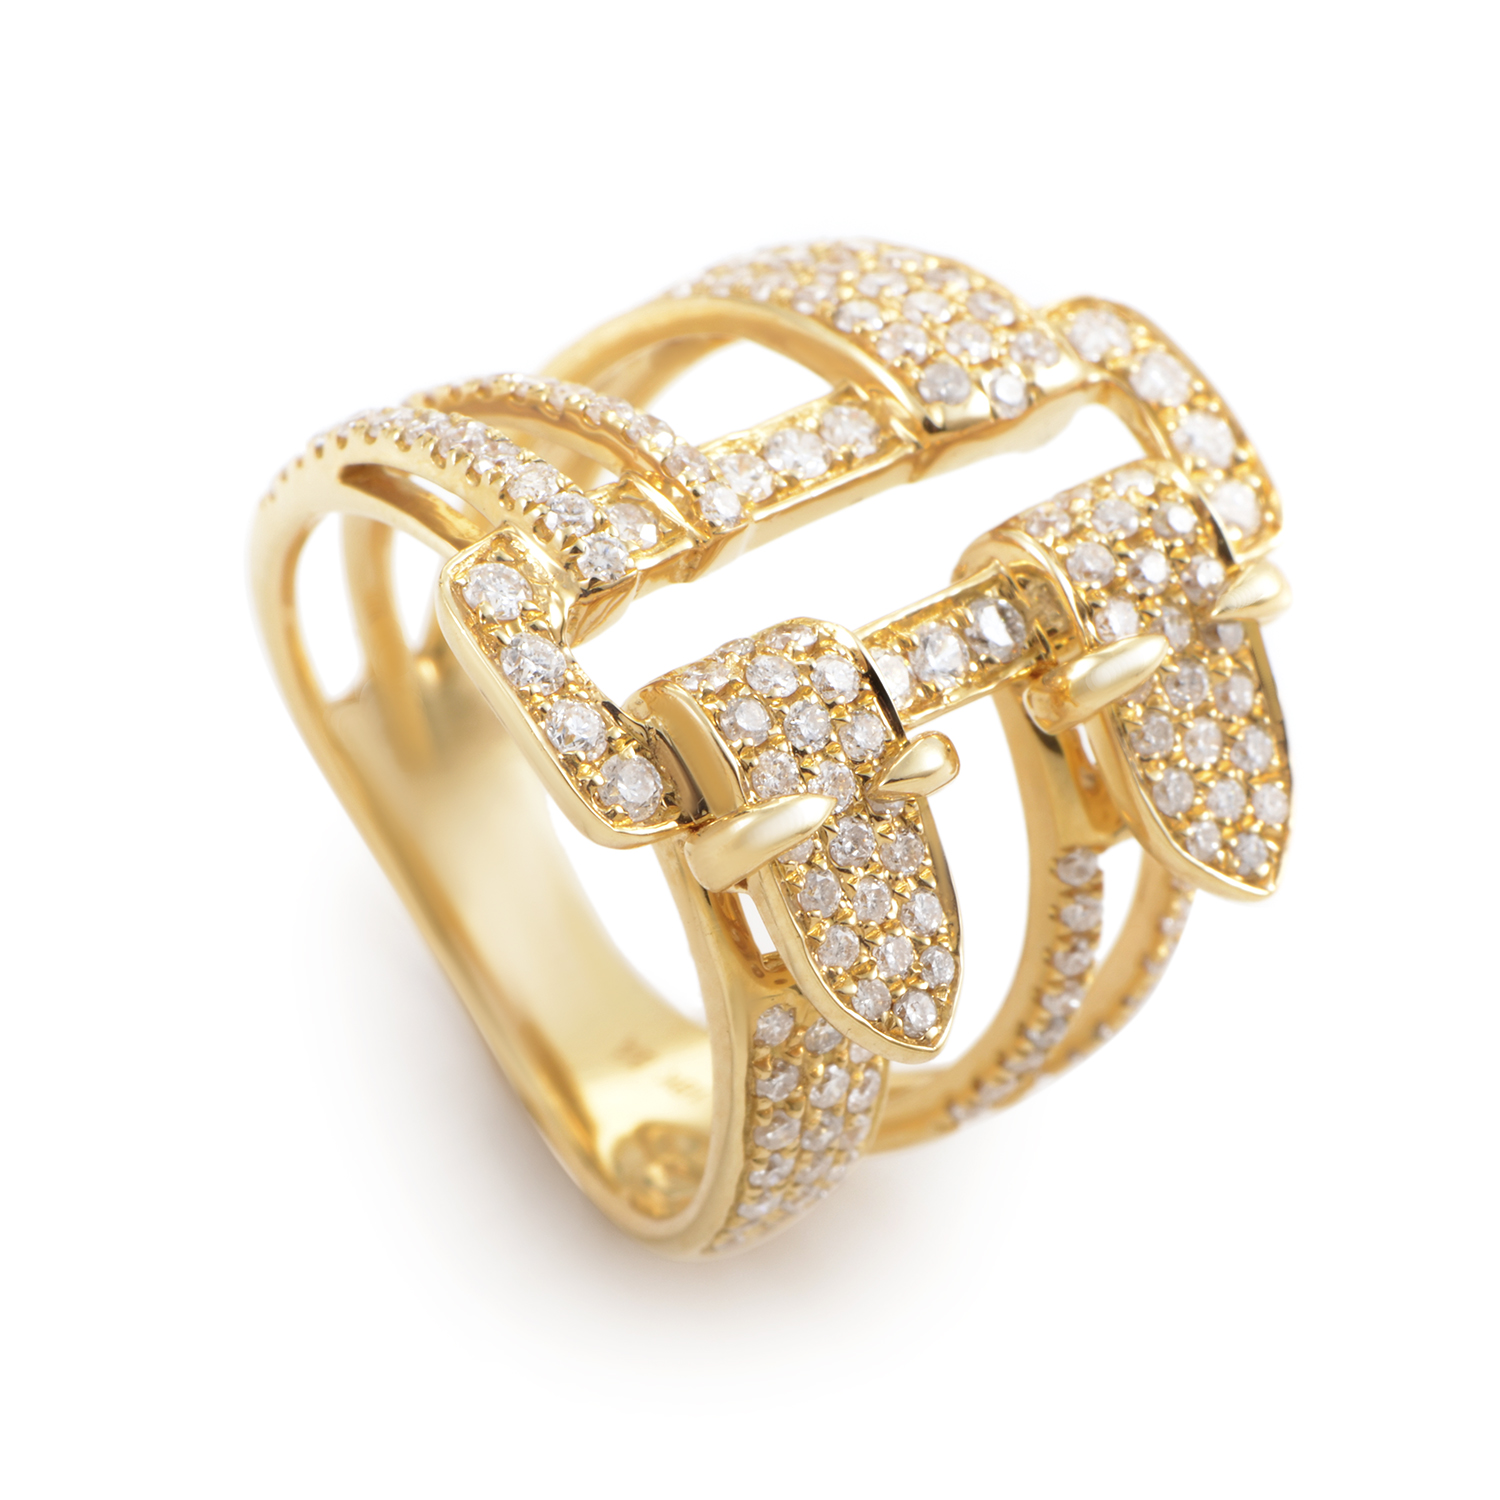 18K Yellow Gold Diamond Pave Buckle Ring KO42161RZZ